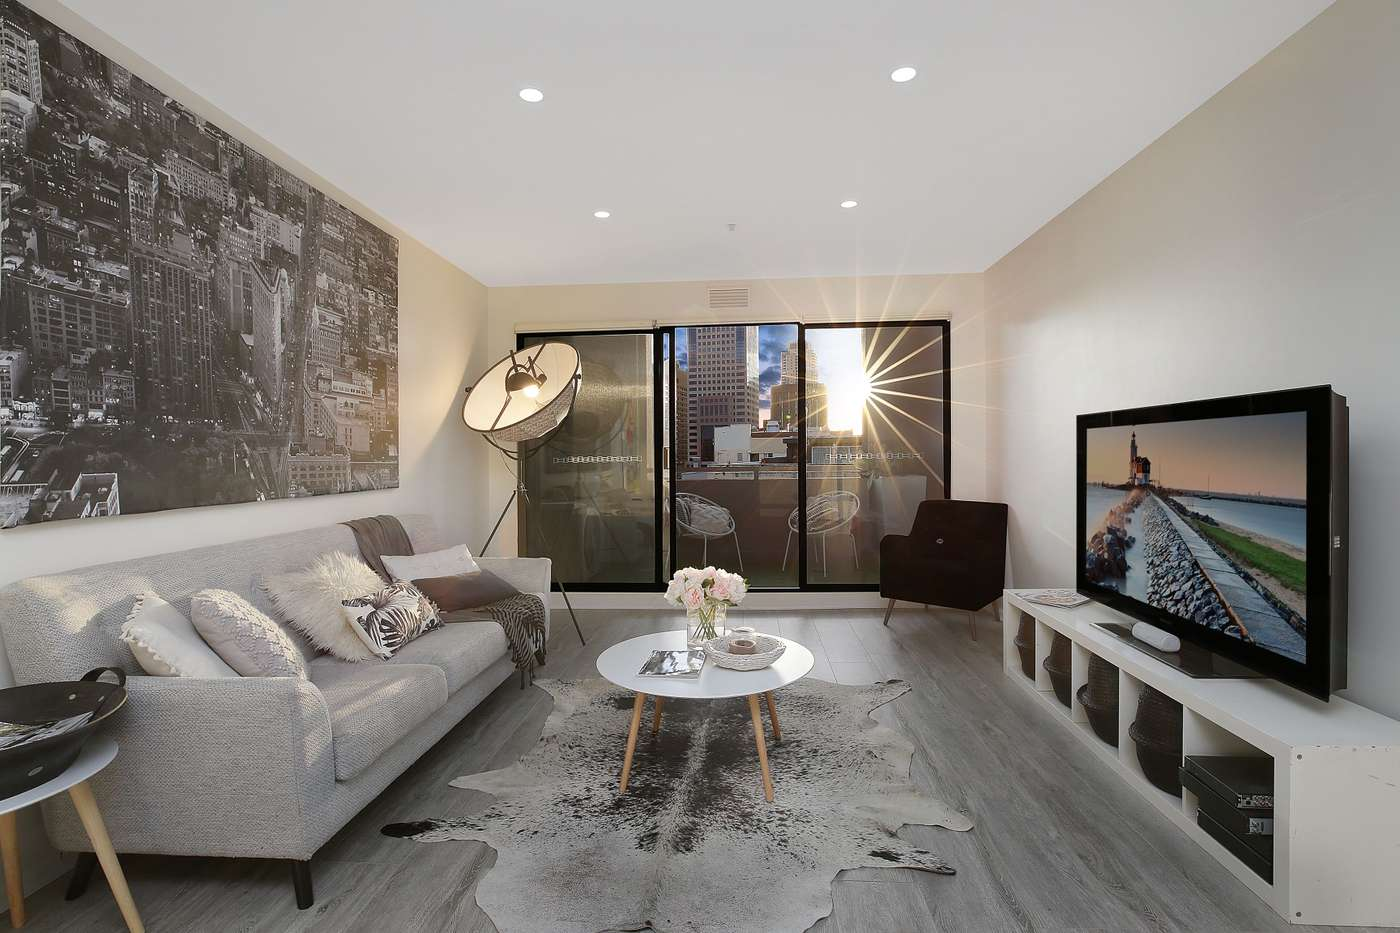 Main view of Homely apartment listing, 45/74-80 Reservoir Street, Surry Hills, NSW 2010